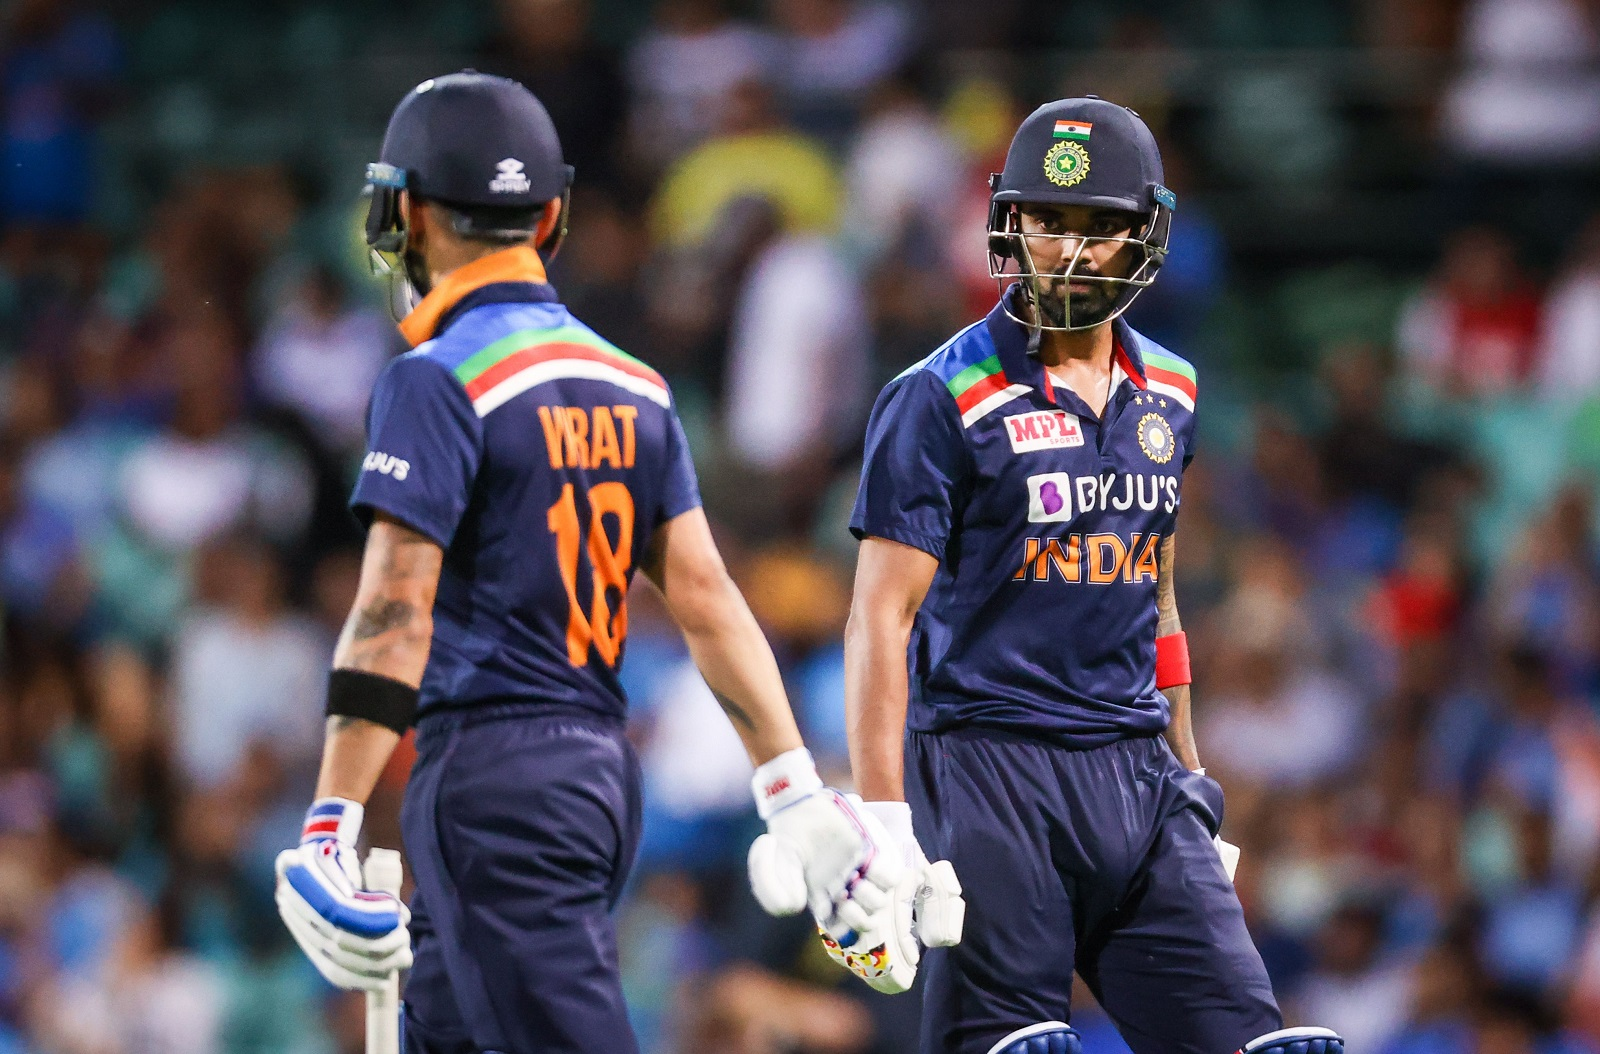 INDIAN DOMINANCE IN T20 PLAYER INDEX